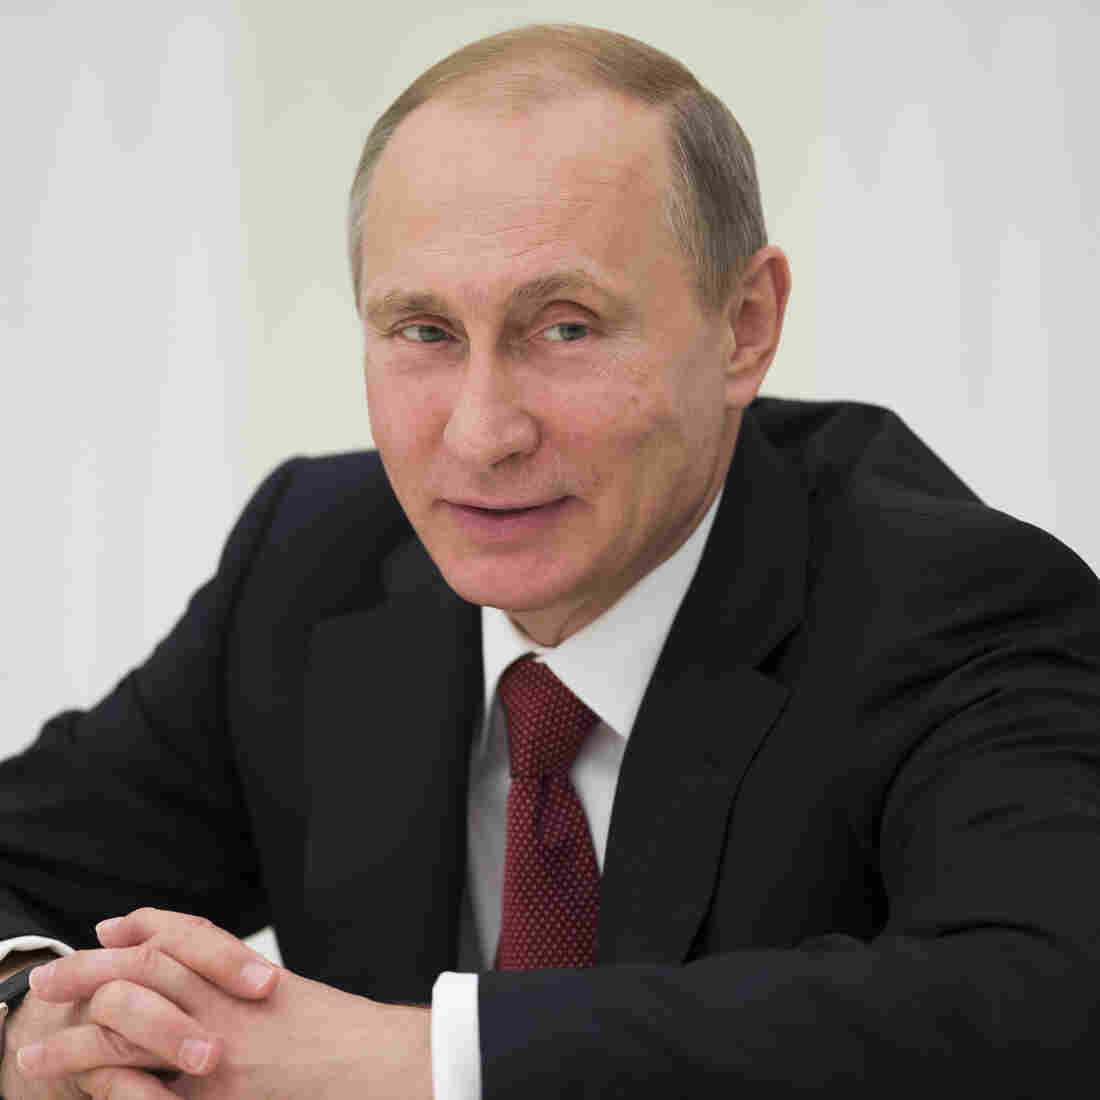 Putin To West: Russia Is No Threat